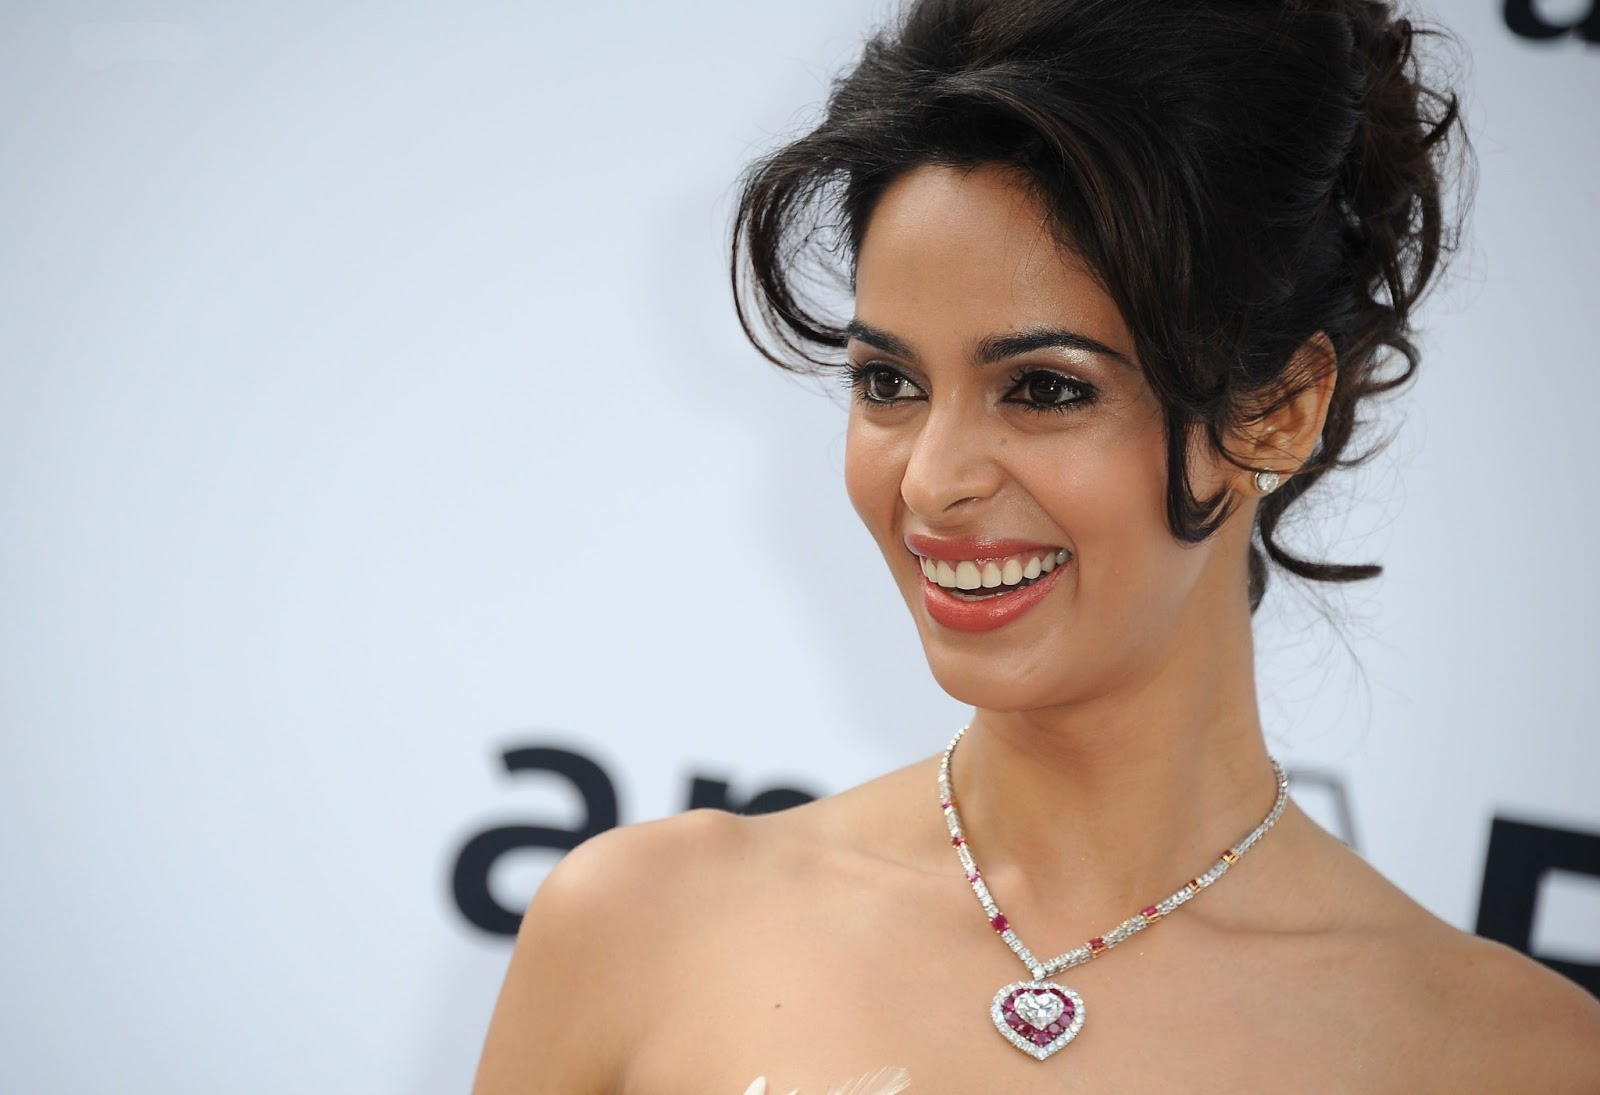 Rather good Mallika sherawat face attentively would